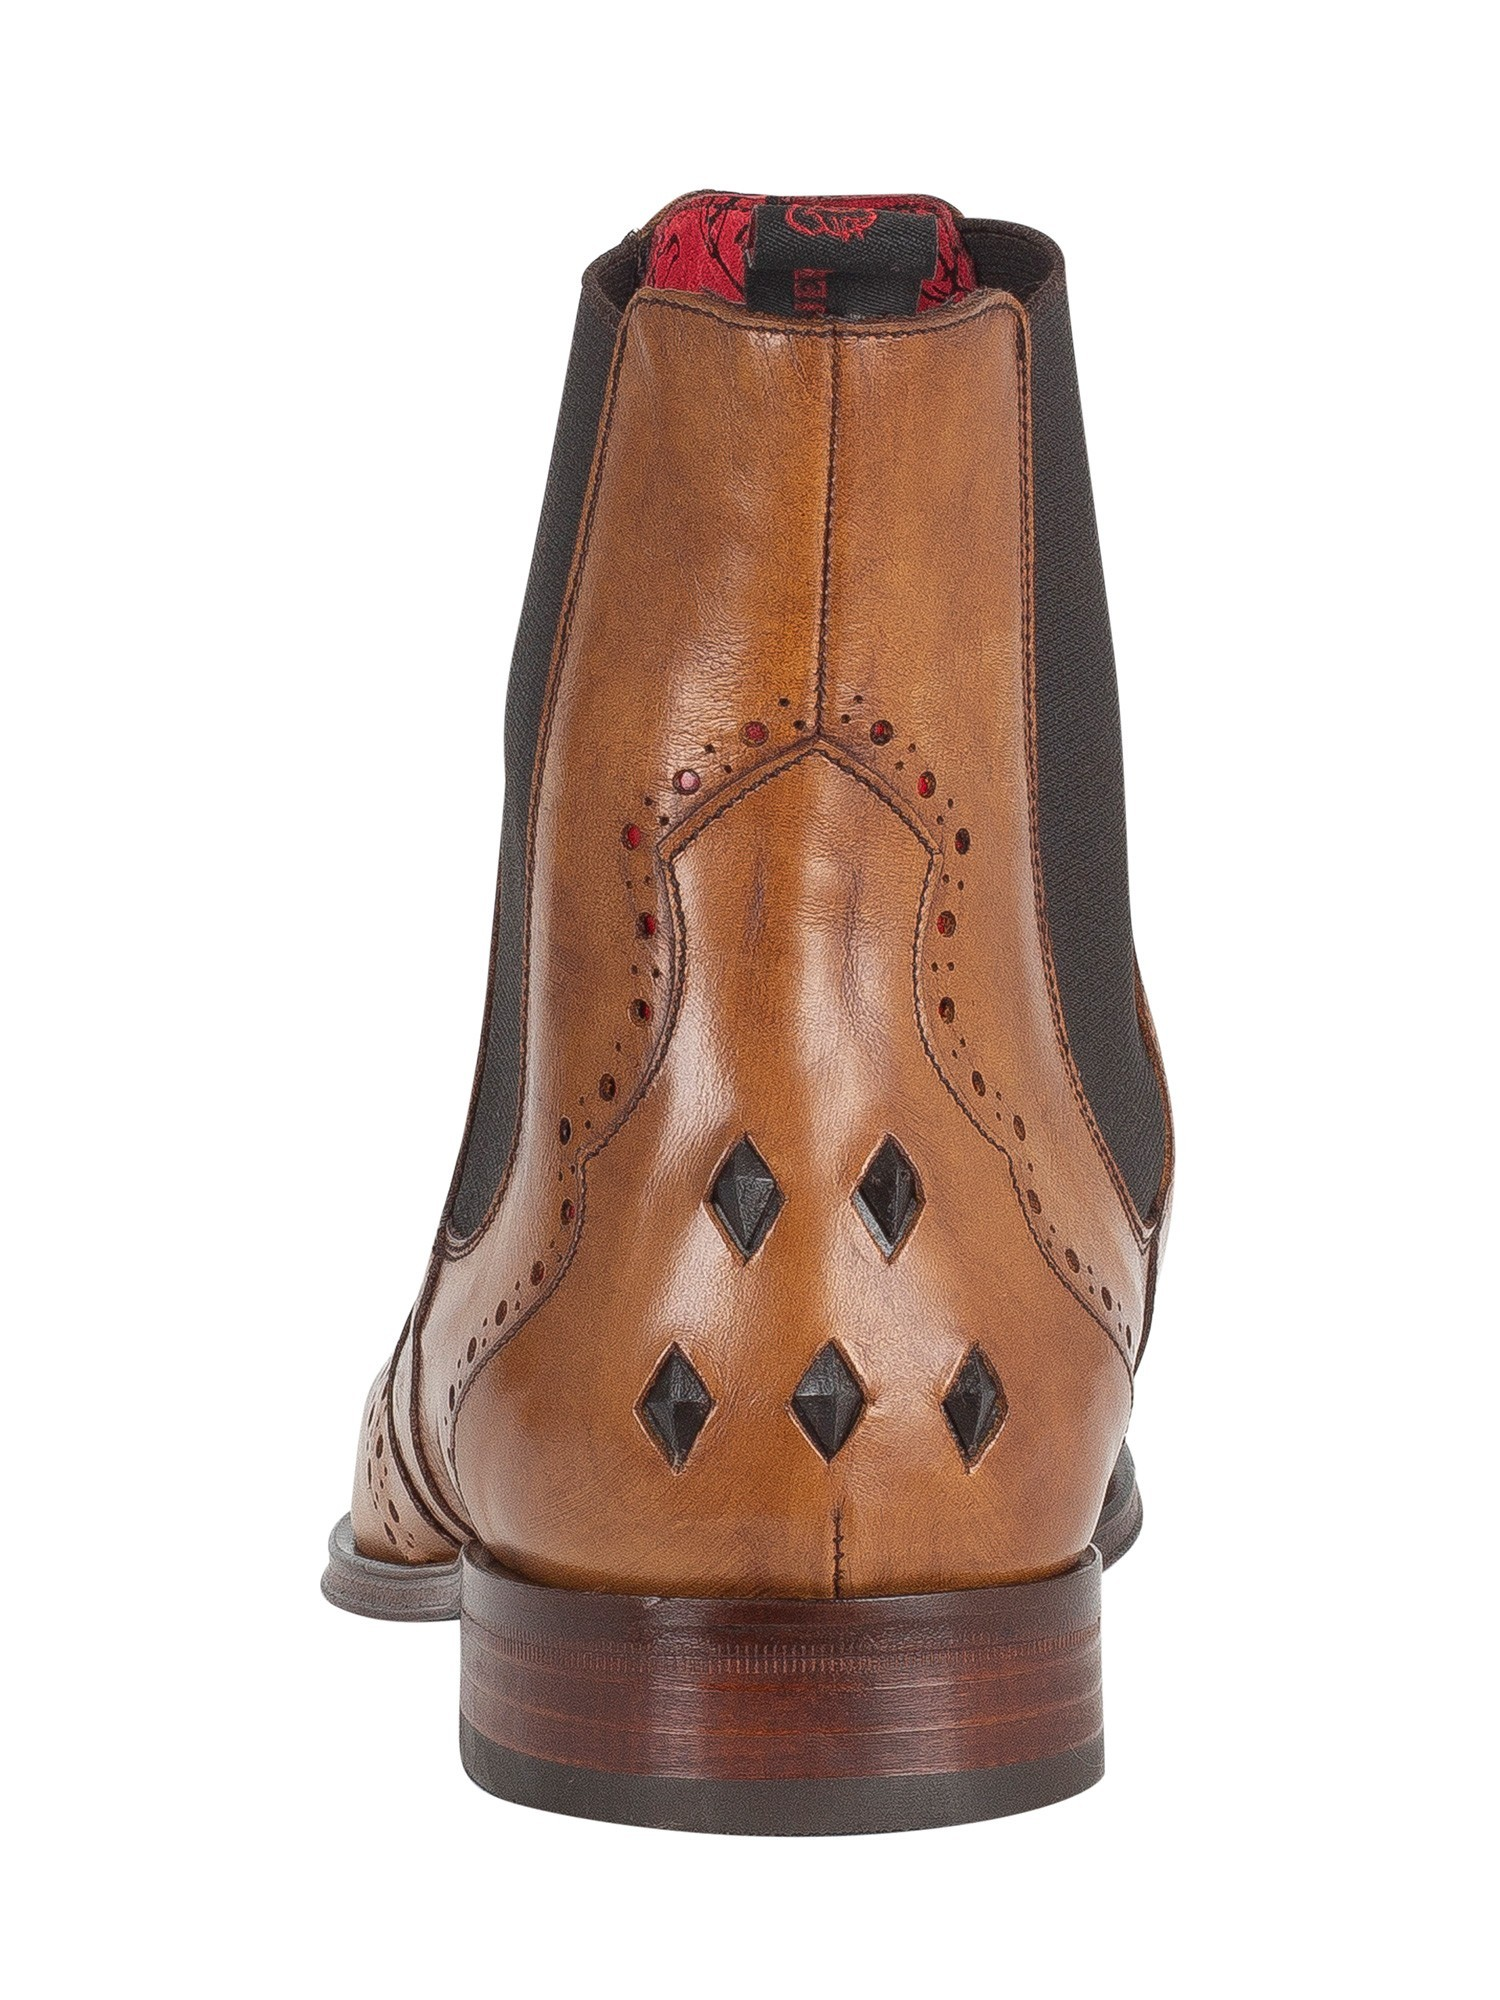 Jeffery West Scarface Boots - Lavato Tan/Charcoal Red